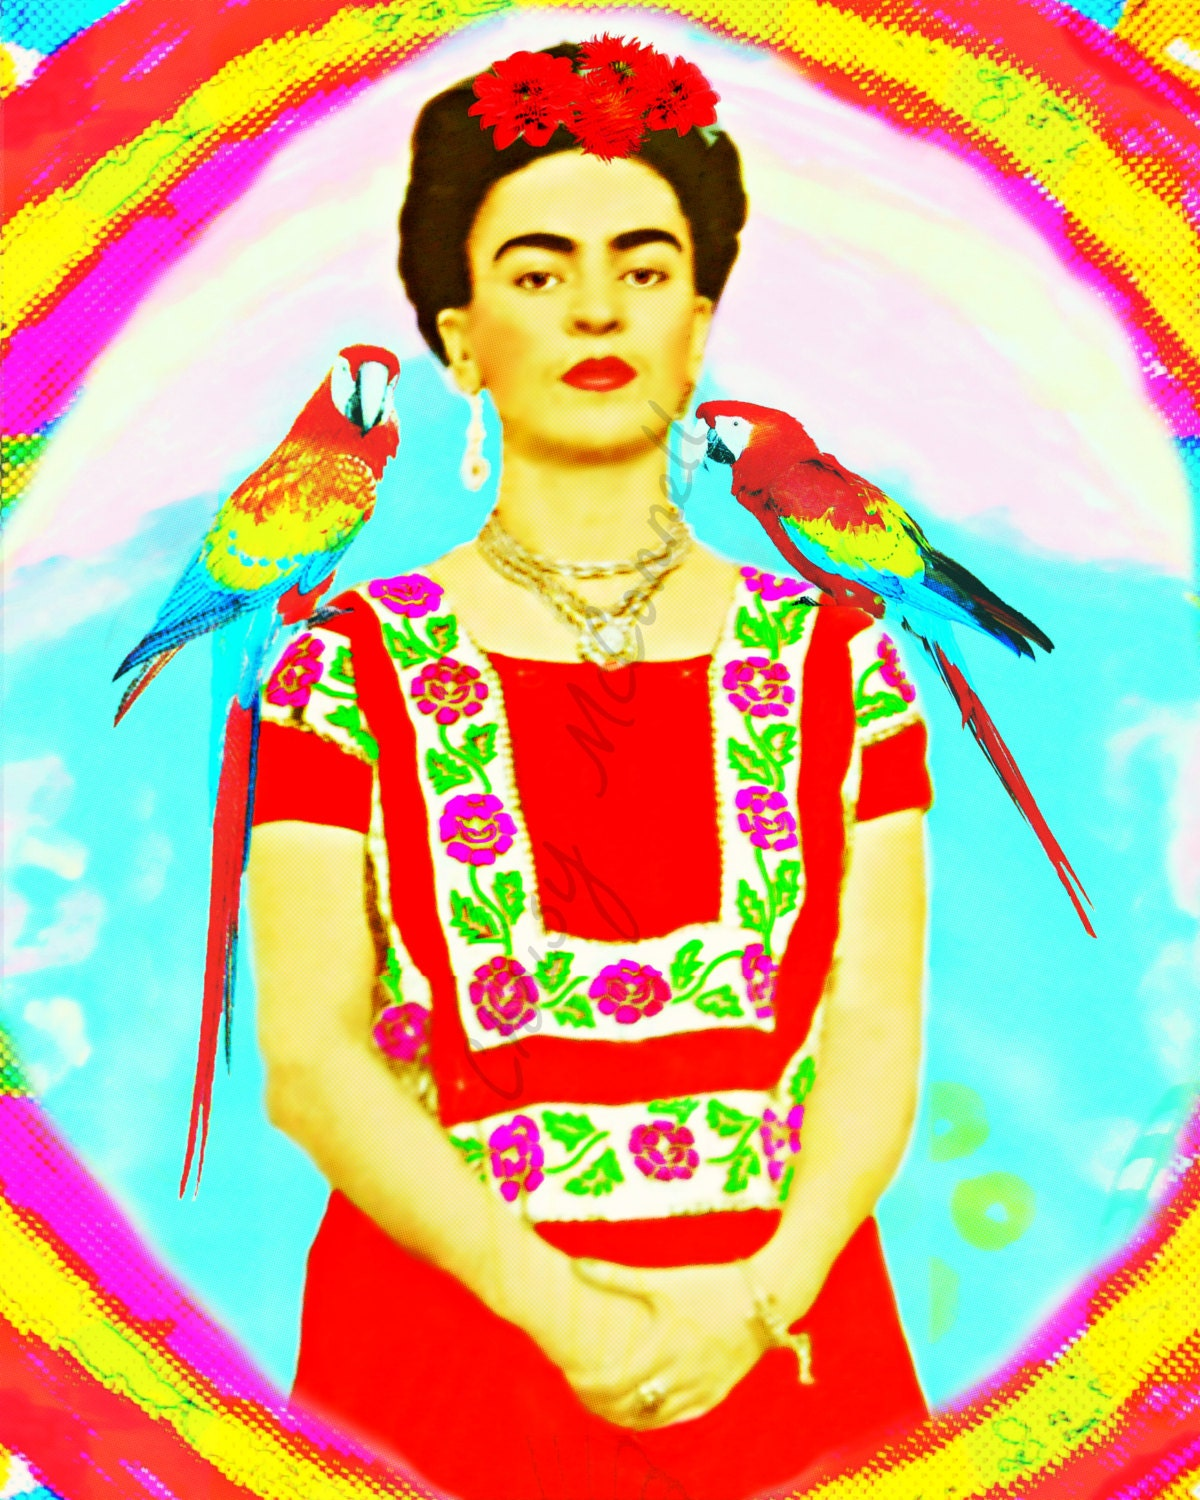 Instant Digital Download Vintage Tarot Cards Collage Sheet 1x2: Frida Kahlo Parrots And Rainbow Poster Print Instant Digital